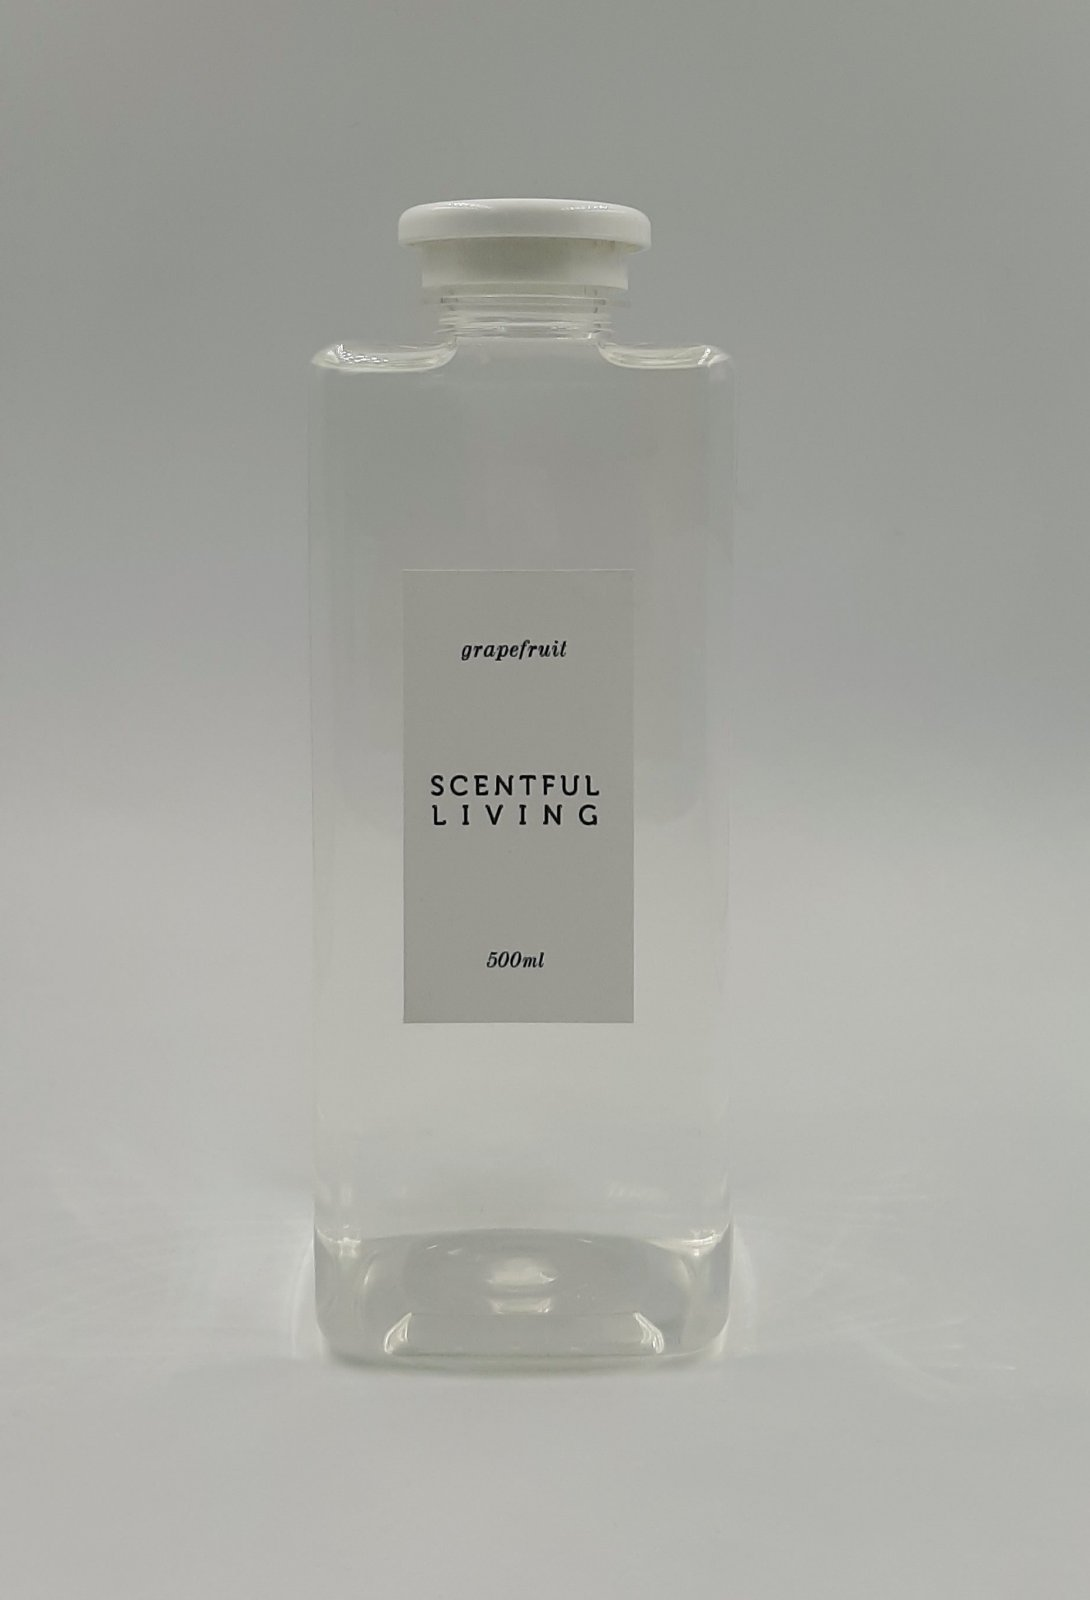 Grapefruit Room Spray Refill